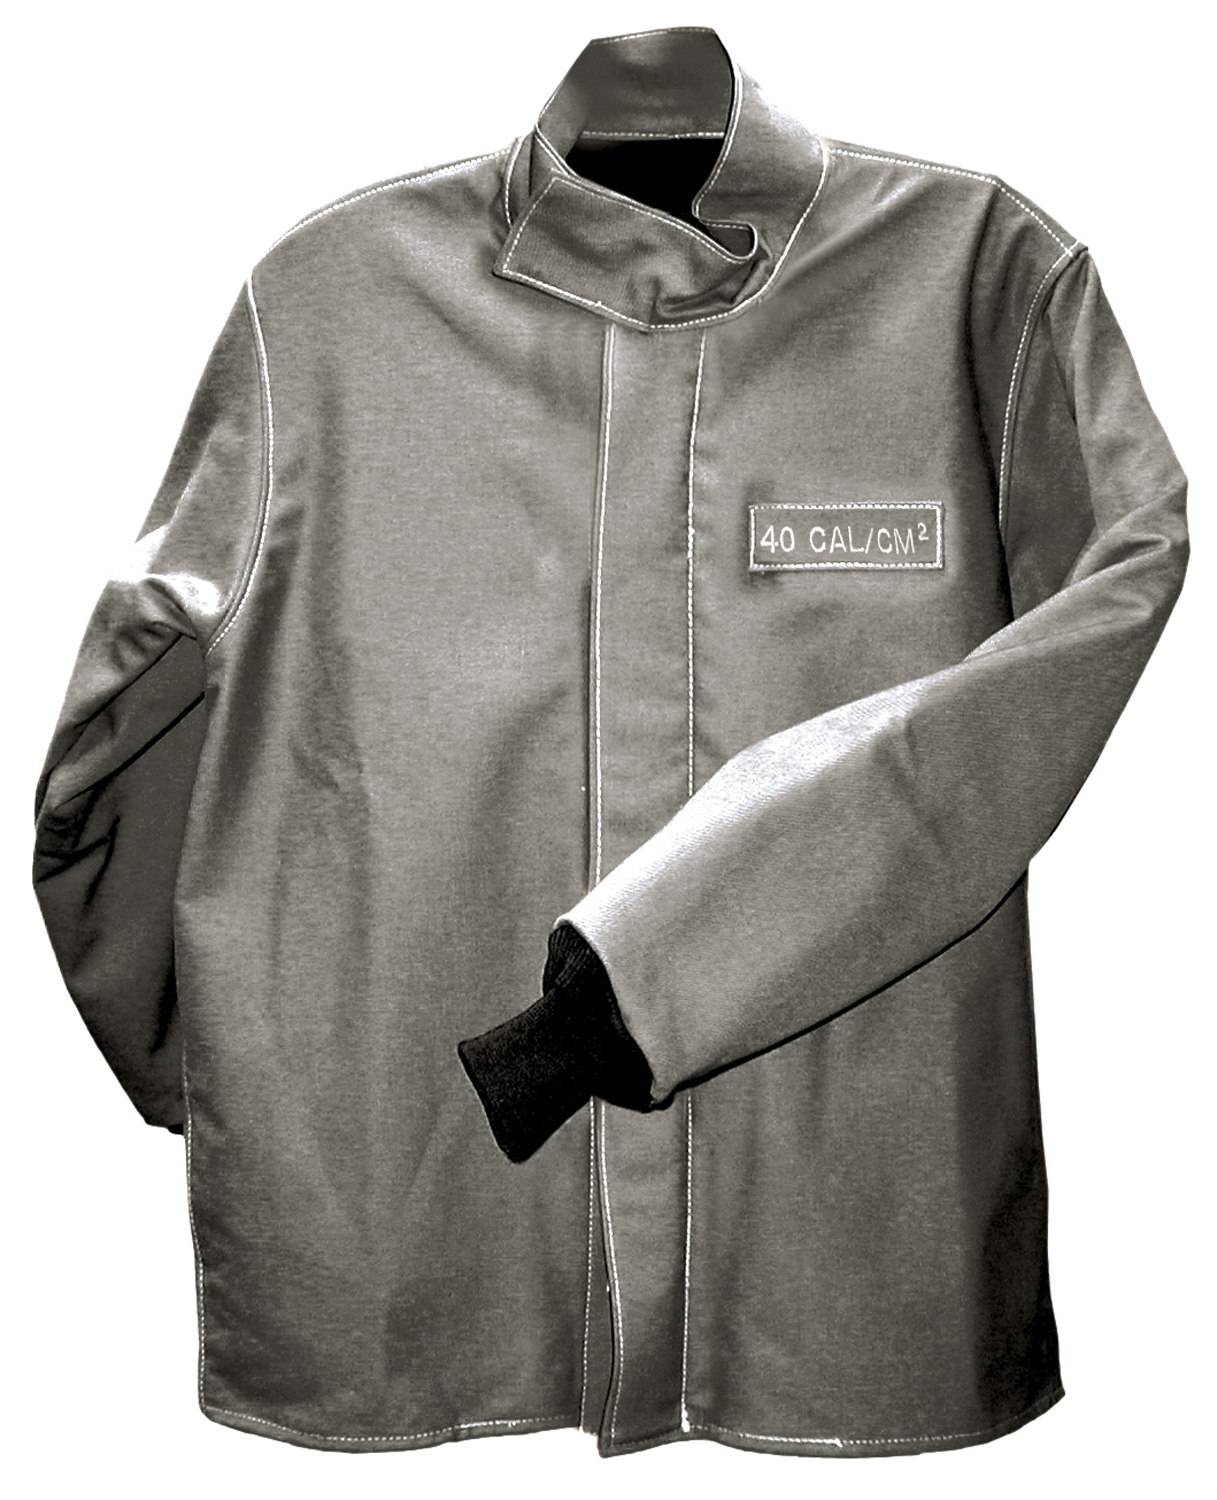 SALISBURY ARC FLASH PROTECTION COAT 40CAL/CM -GRAY- LARGE